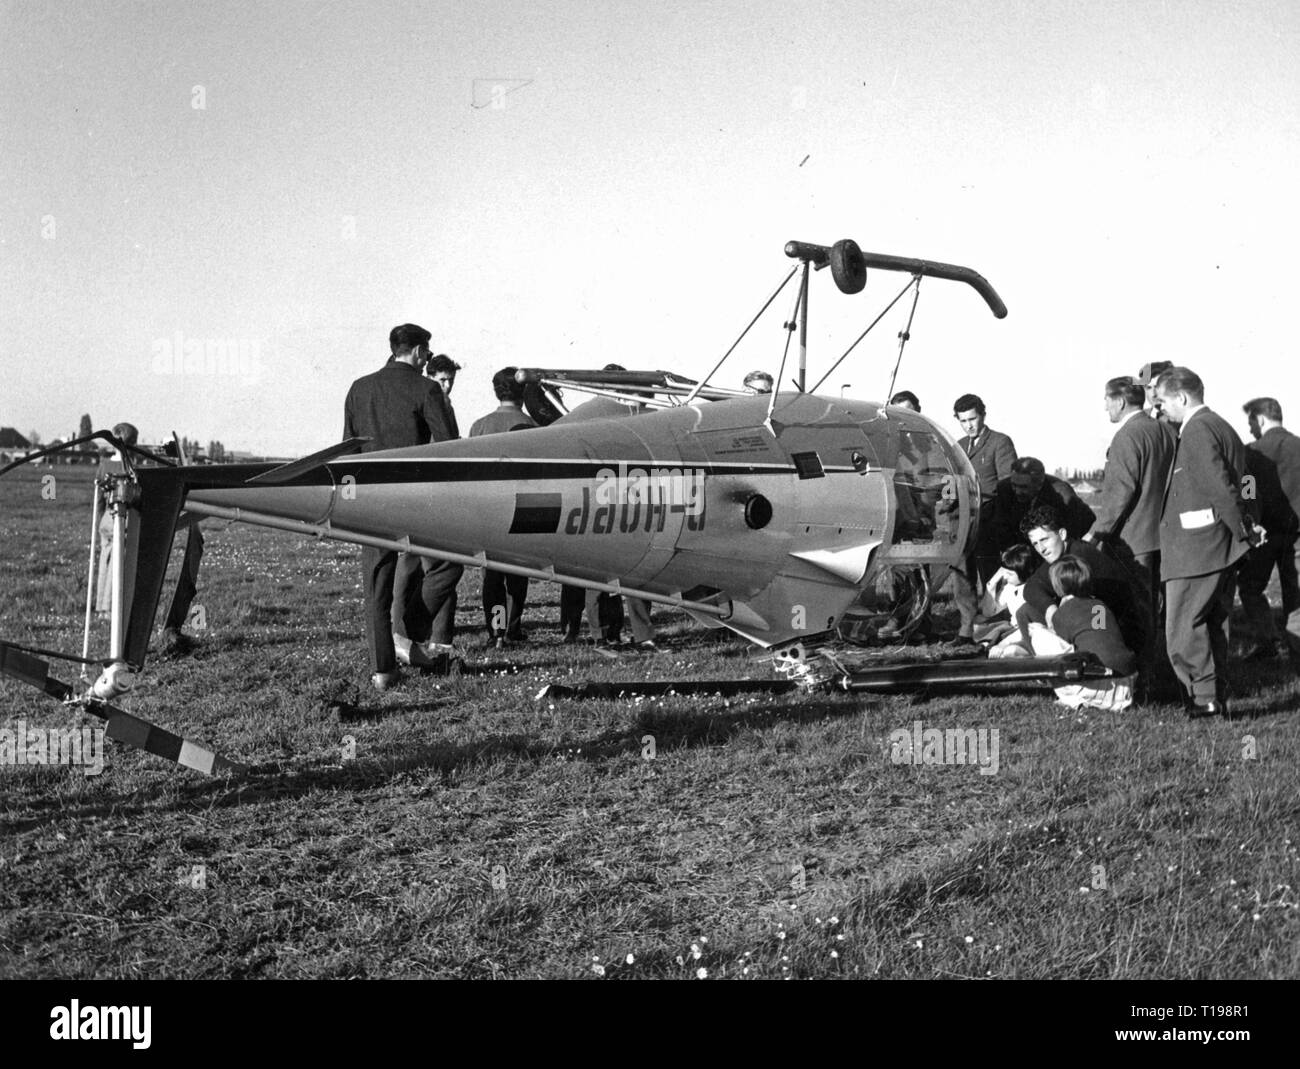 transport / transportation, aviation, disaster, a Brantly B-2 helicopter crashed on a meadow, Germany, early 1960s, Additional-Rights-Clearance-Info-Not-Available Stock Photo